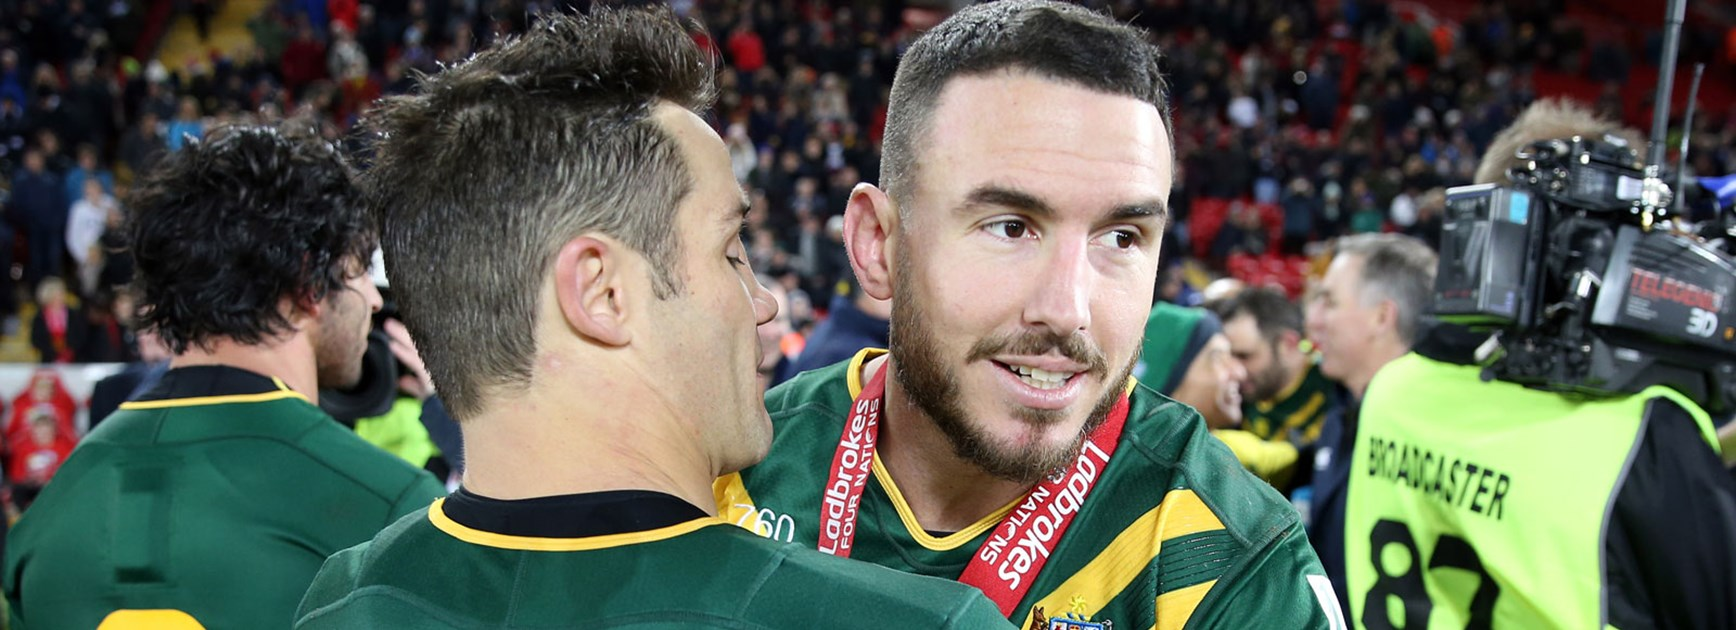 Darius Boyd was named Man of the Match in the 2016 Four Nations Final.